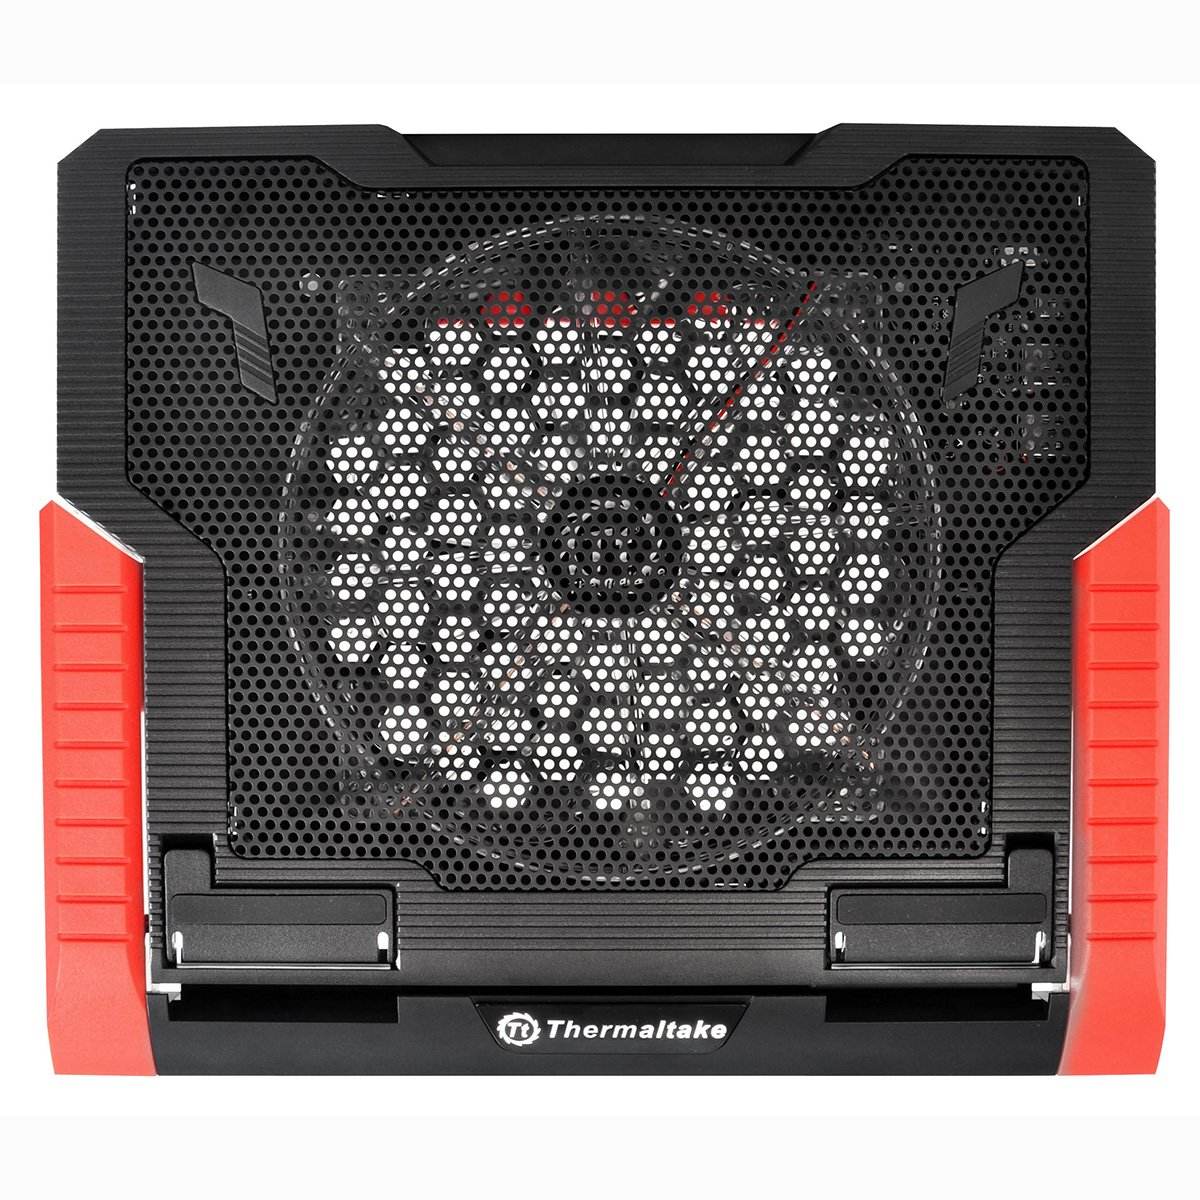 Thermaltake Massive 23 GT Steel Mesh Panel Single 200mm Red LED Fan Adjustable Speed Control 10''-17'' Laptop Notebook Cooling Pad CLN0019 by Thermaltake (Image #6)